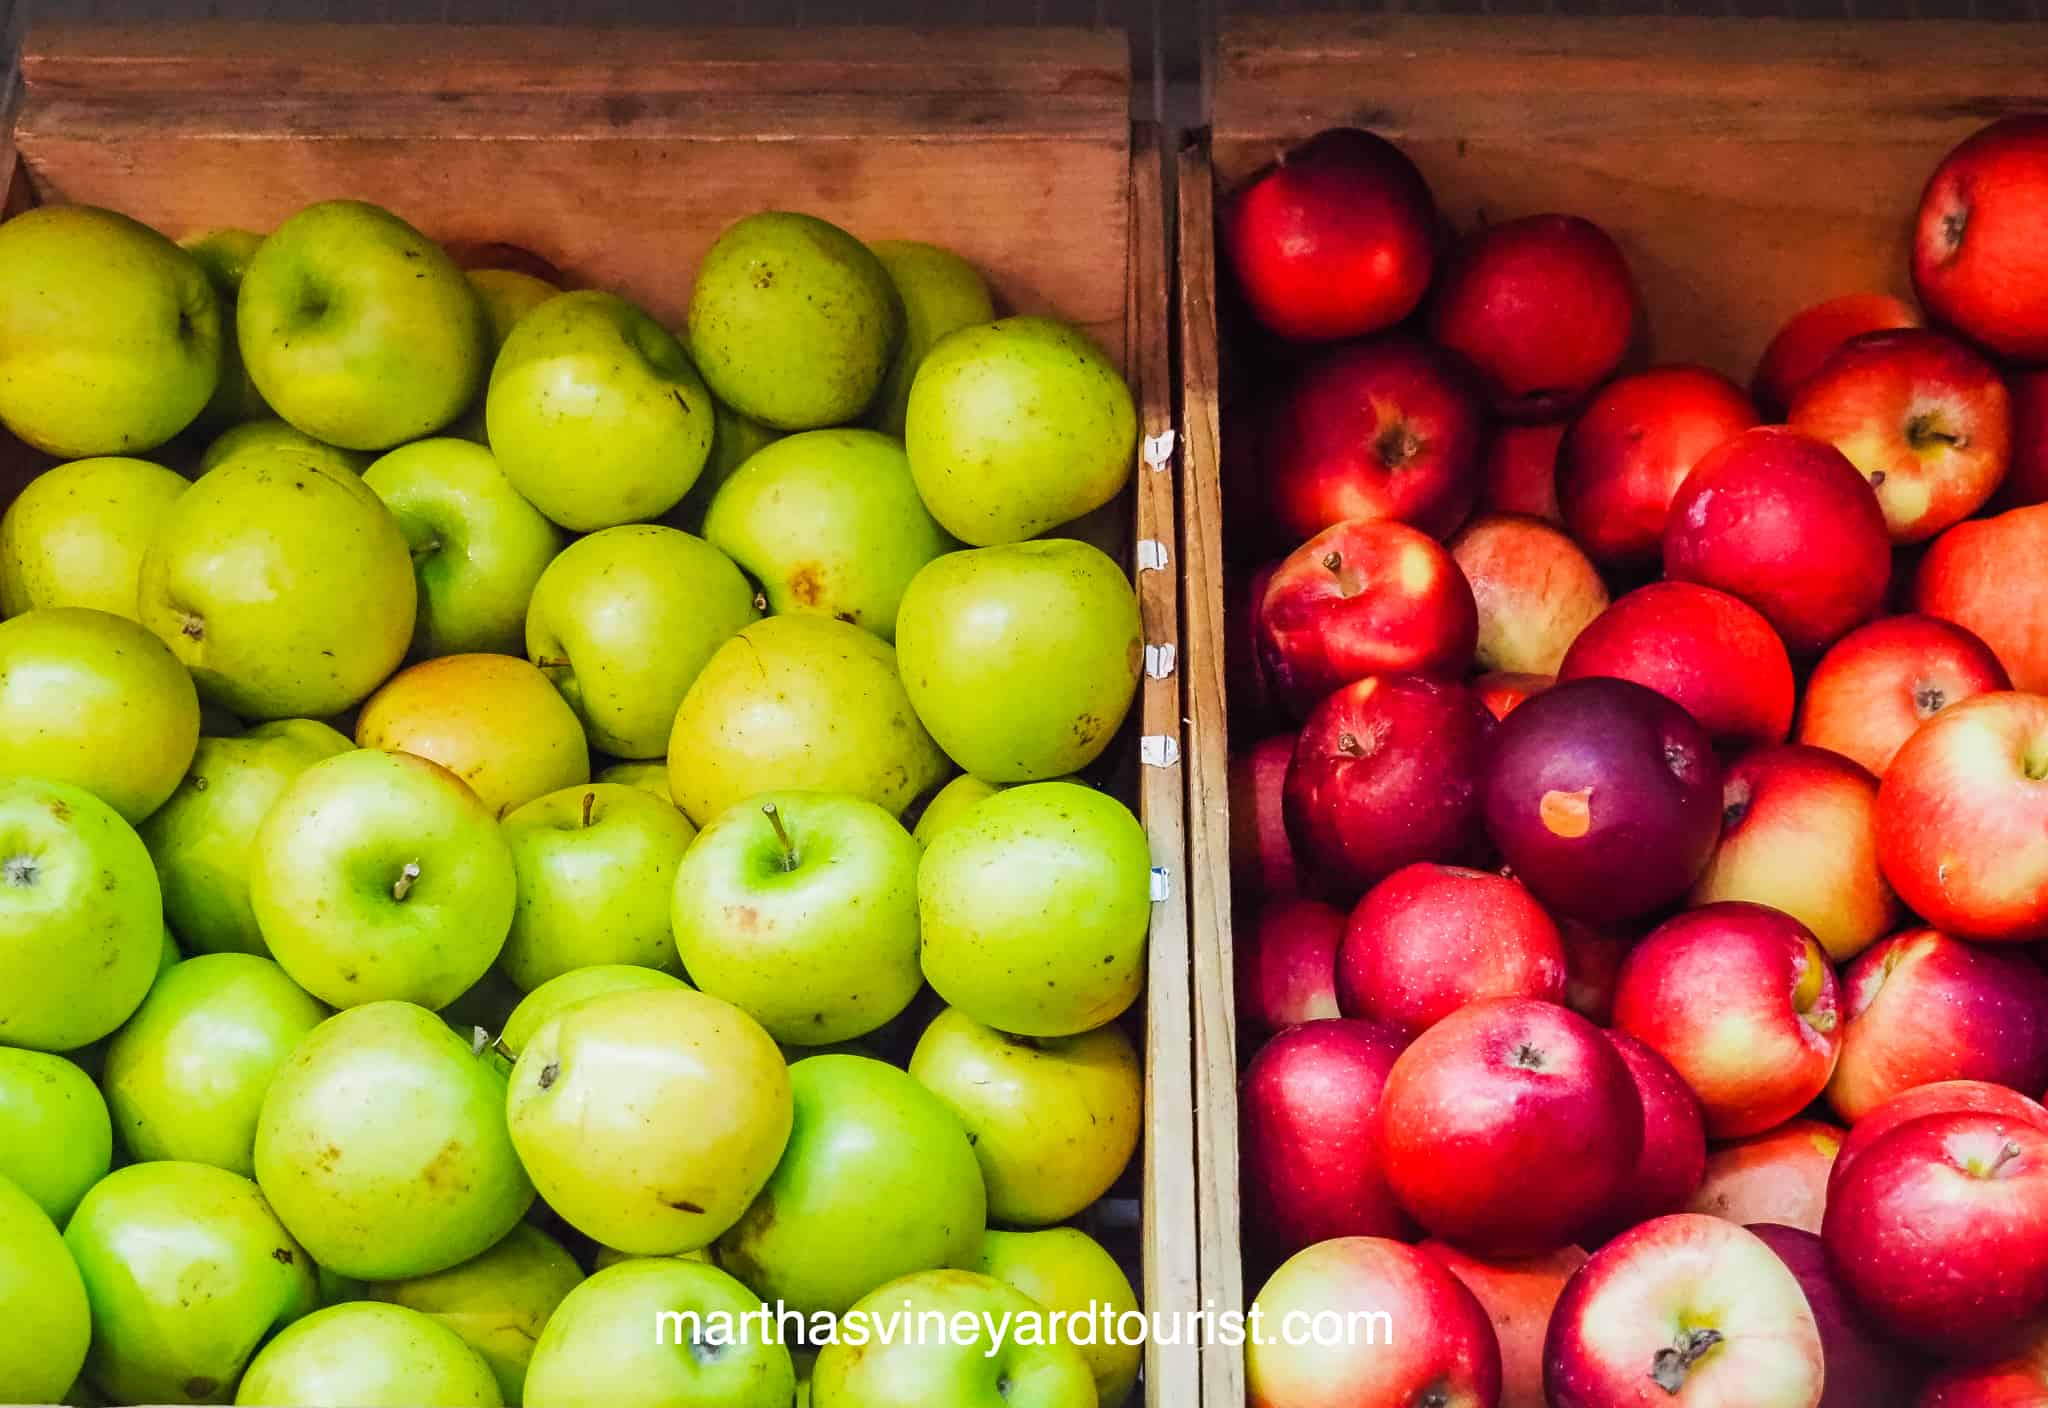 red and green apples in crates